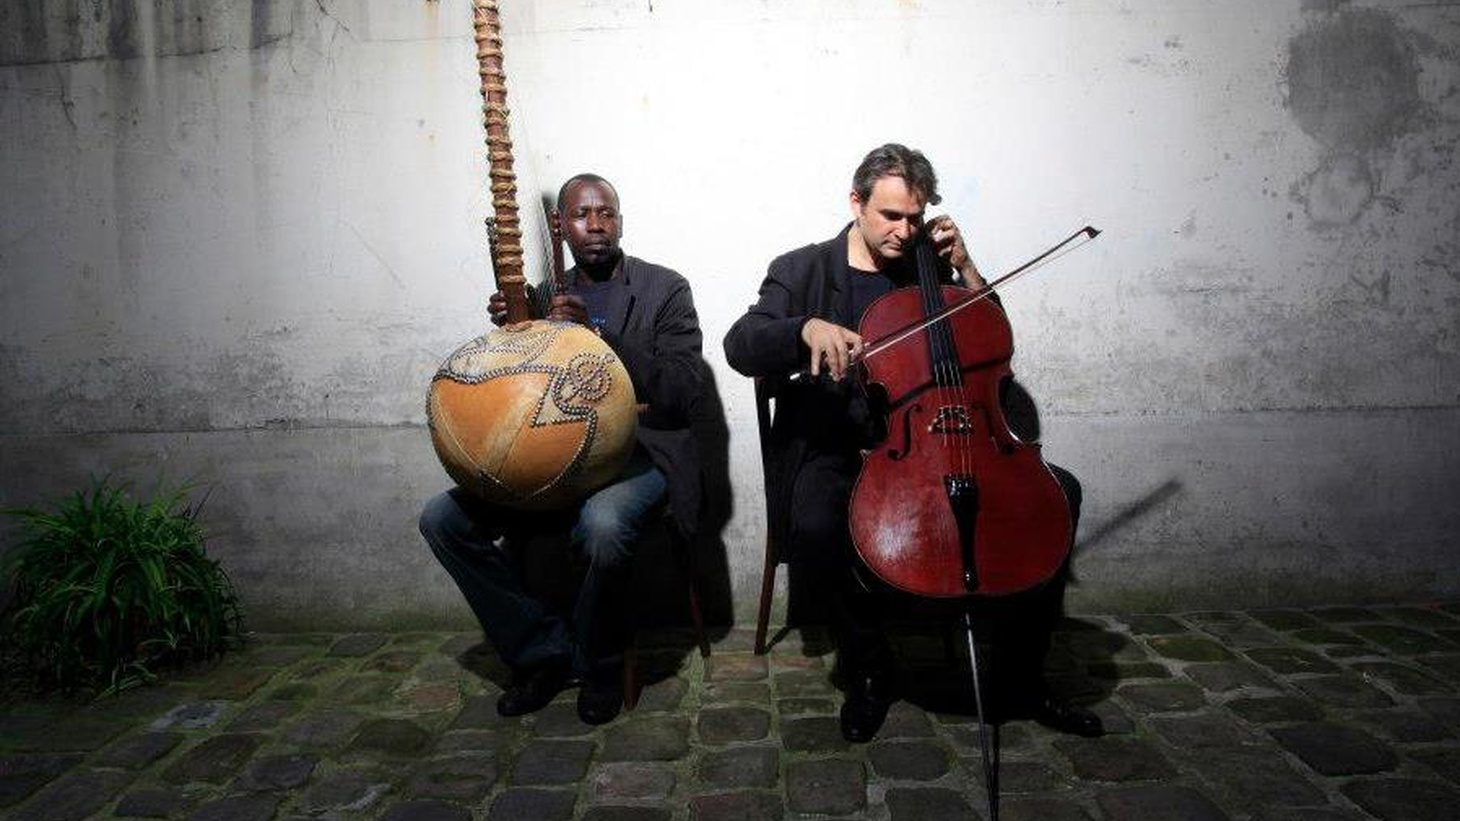 The pairing of the musical instruments the kora and the cello offer a magical sound in the hands of Ballaké Sissoke and Vincent Segal.